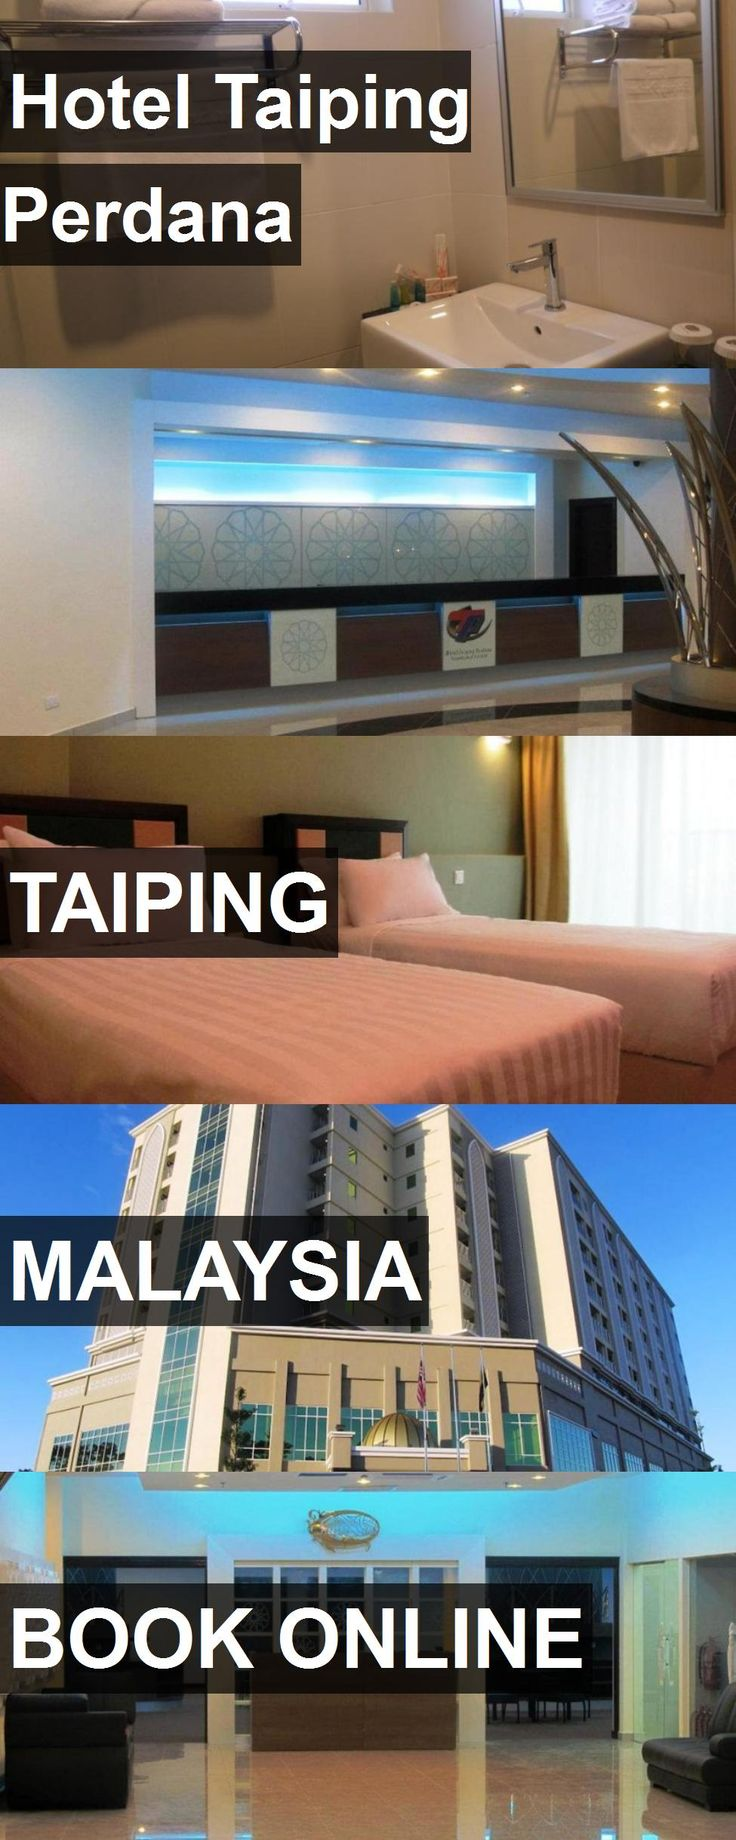 Hotel Taiping Perdana in Taiping, Malaysia. For more information, photos, reviews and best prices please follow the link. #Malaysia #Taiping #travel #vacation #hotel